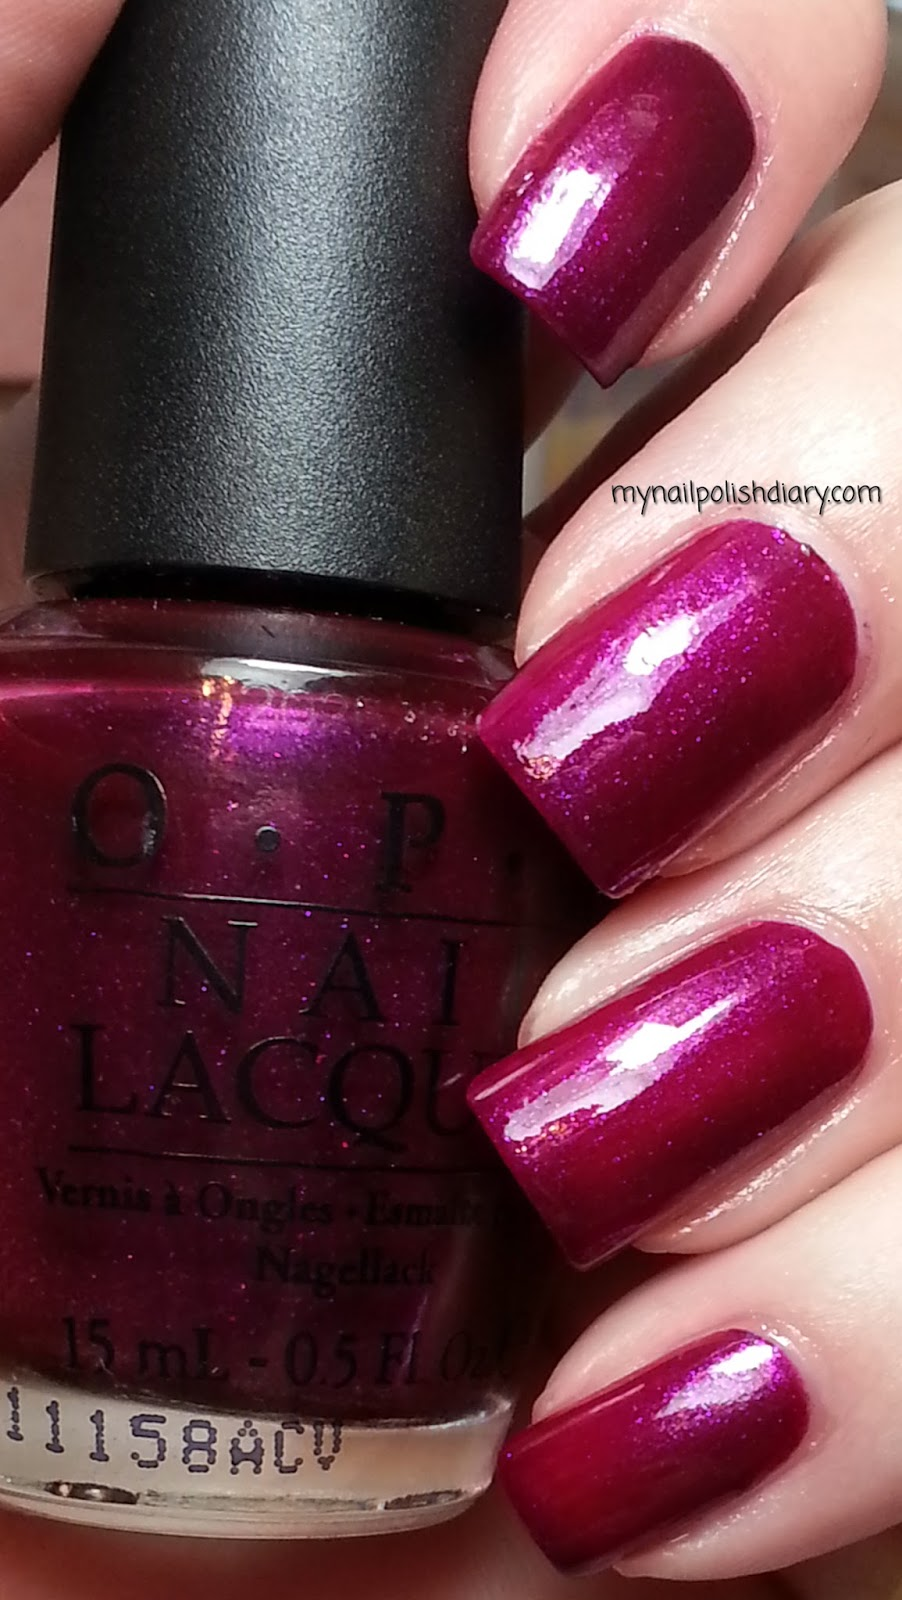 My Nail Polish Diary: OPI Congeniality Is My Middle Name